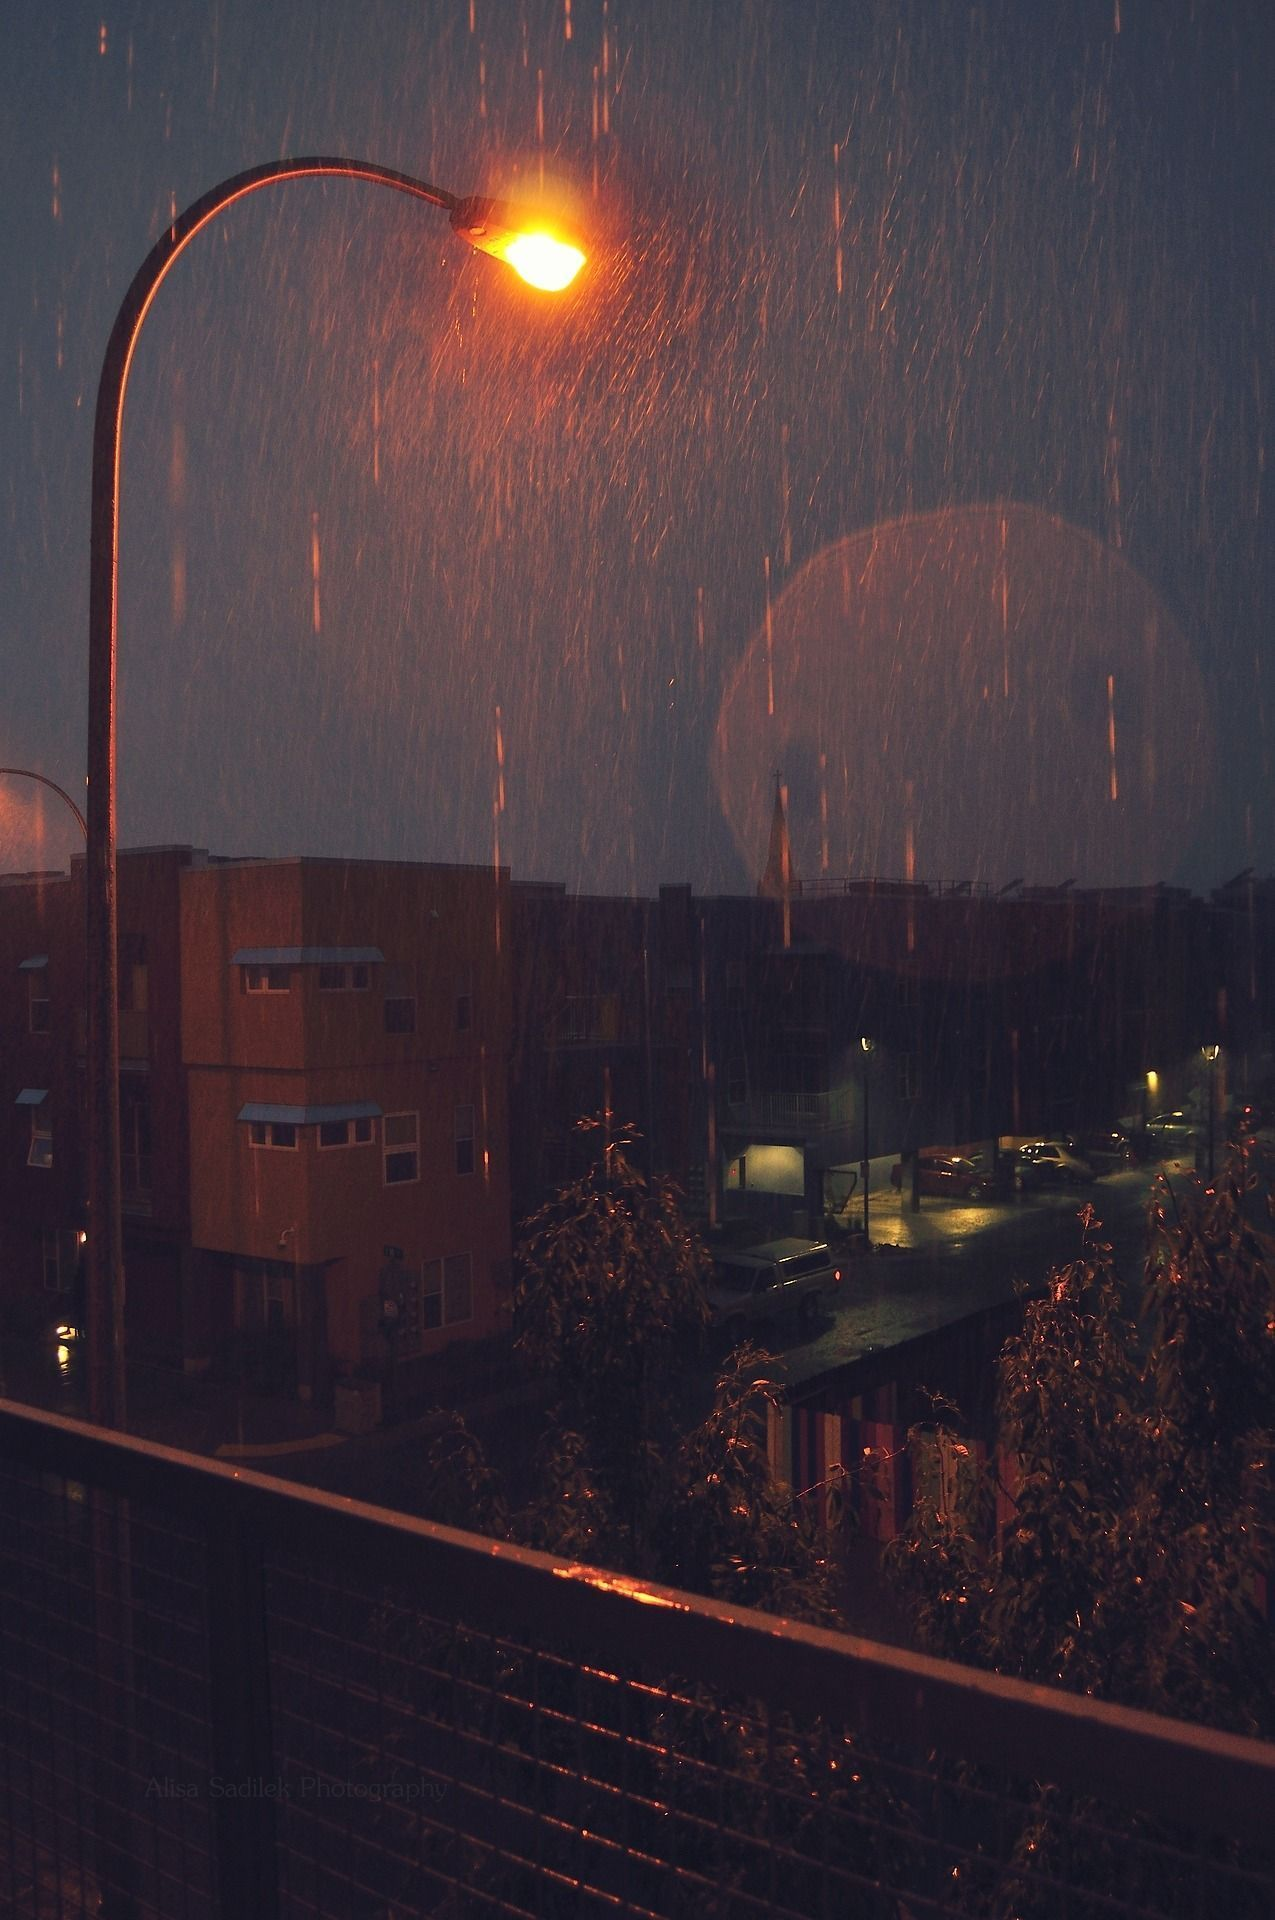 Aesthetics Rainy City Wallpapers 1275x1920